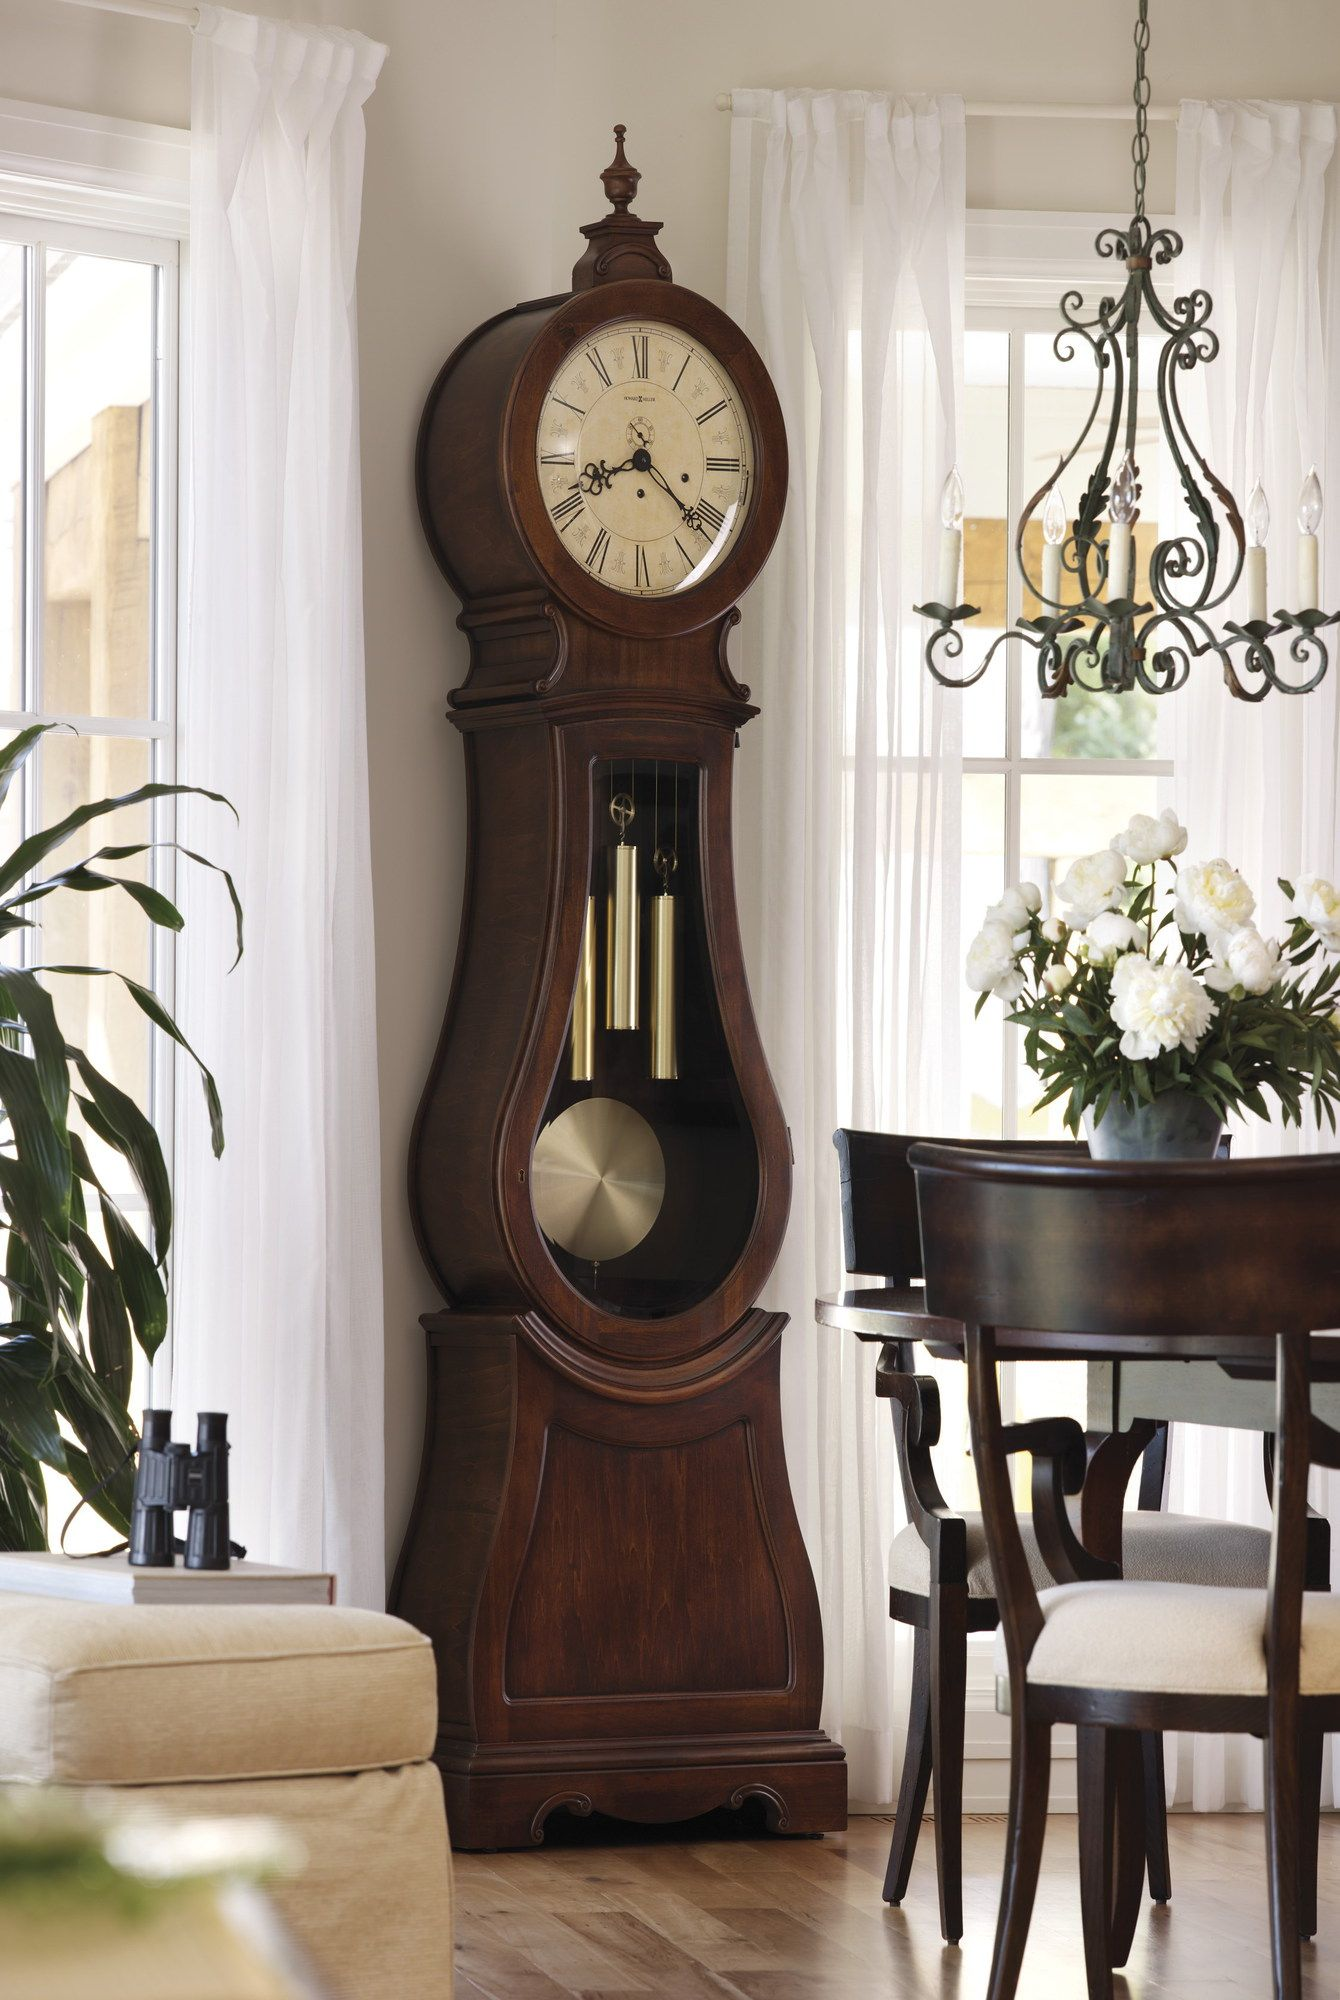 Love Grandfather Clocks, Dislike The Color (would Prefer Lighter) And The  Spireu2026